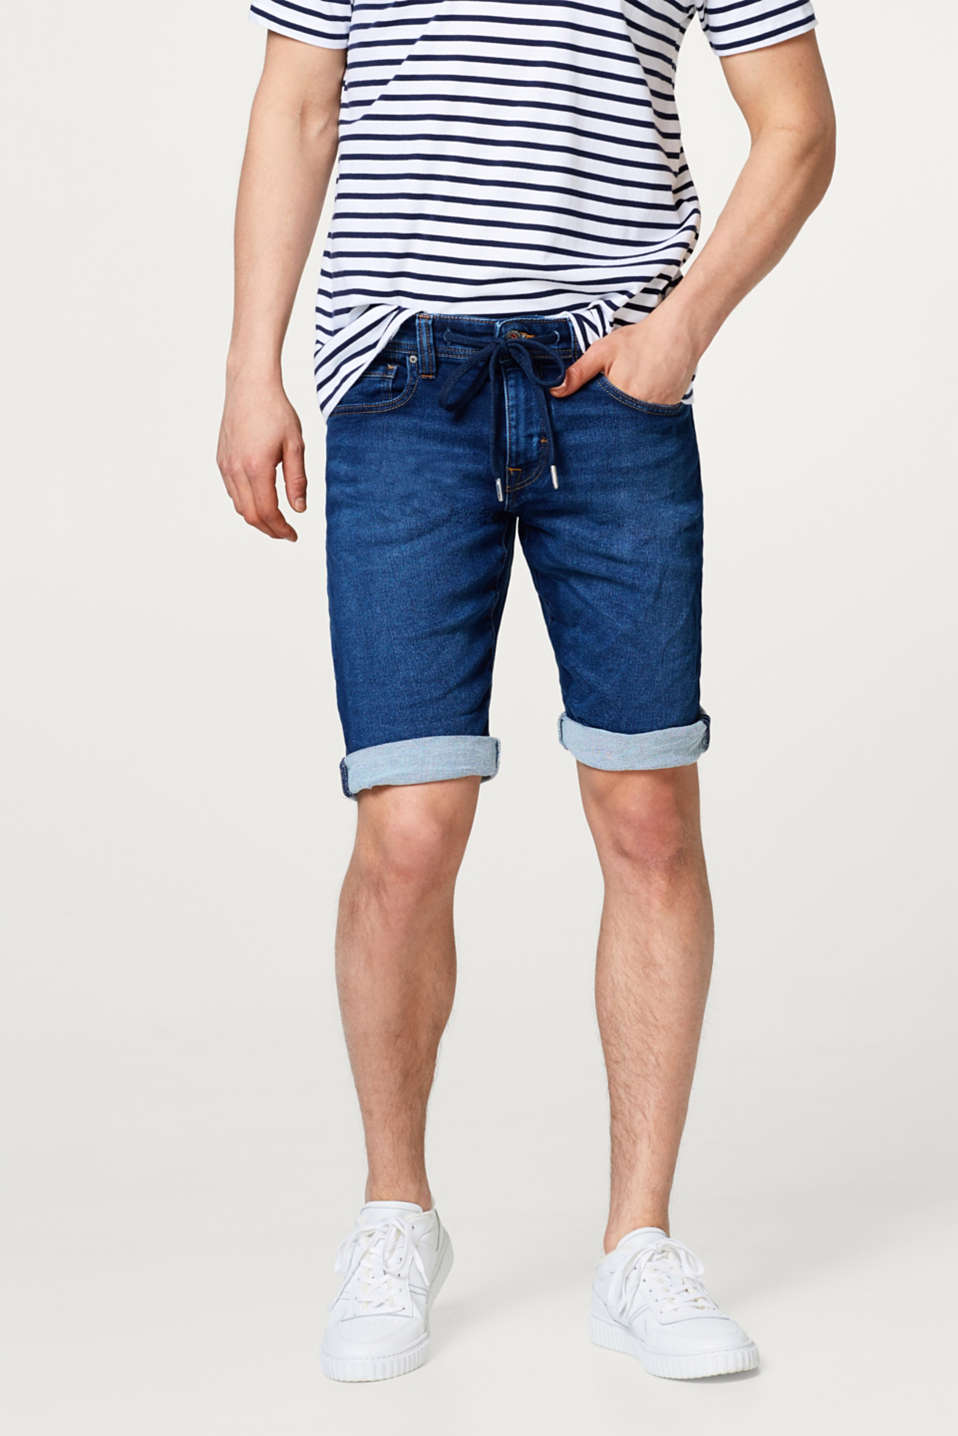 edc - Super stretchy denim shorts with garment-washed effects